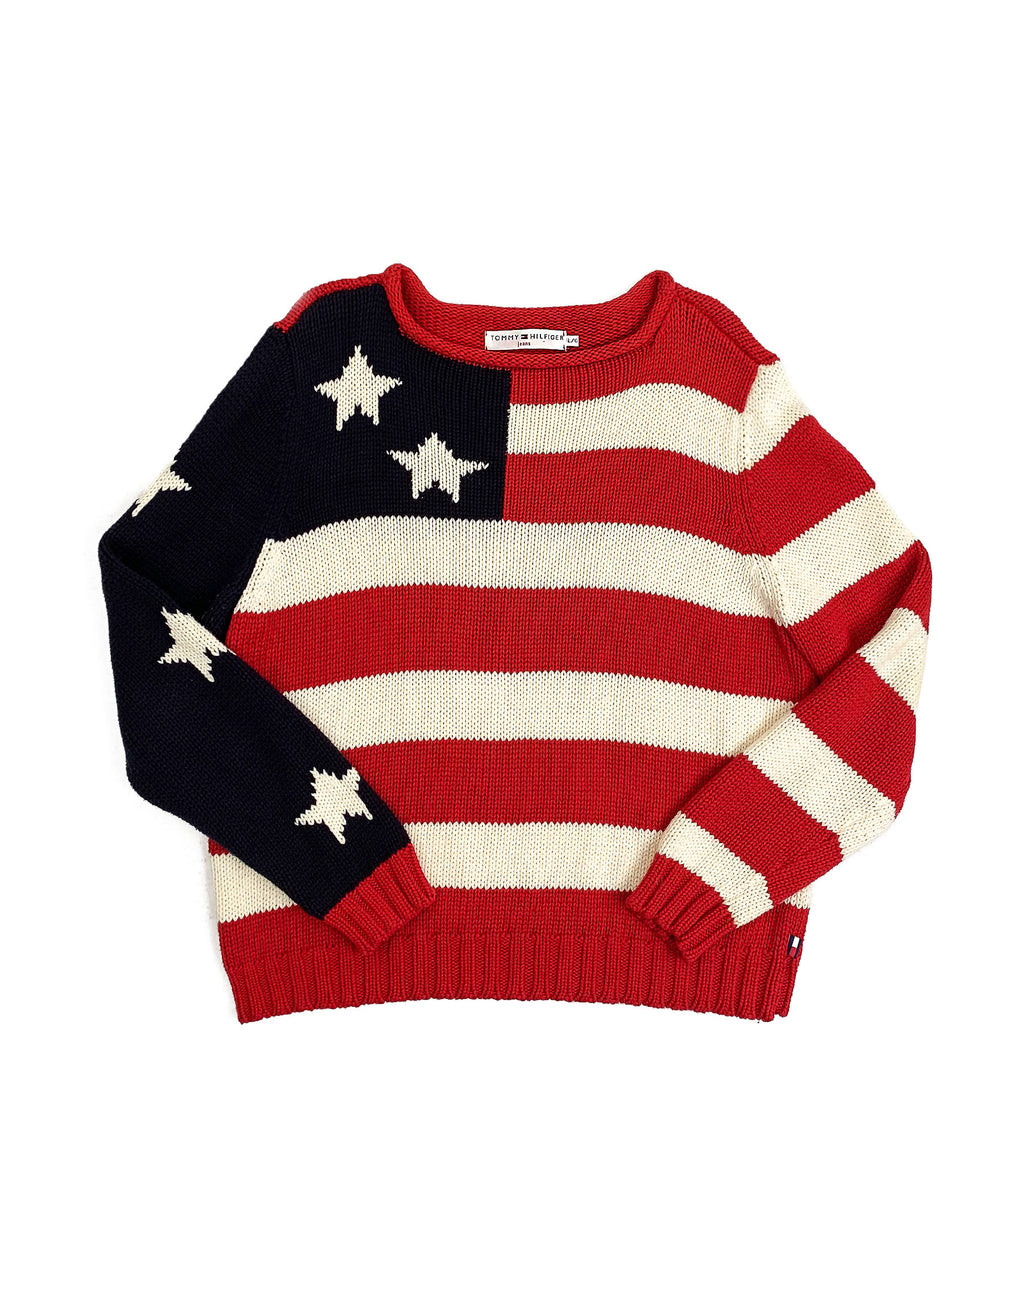 TOMMY HILFIGER USA KNITTED JUMPER